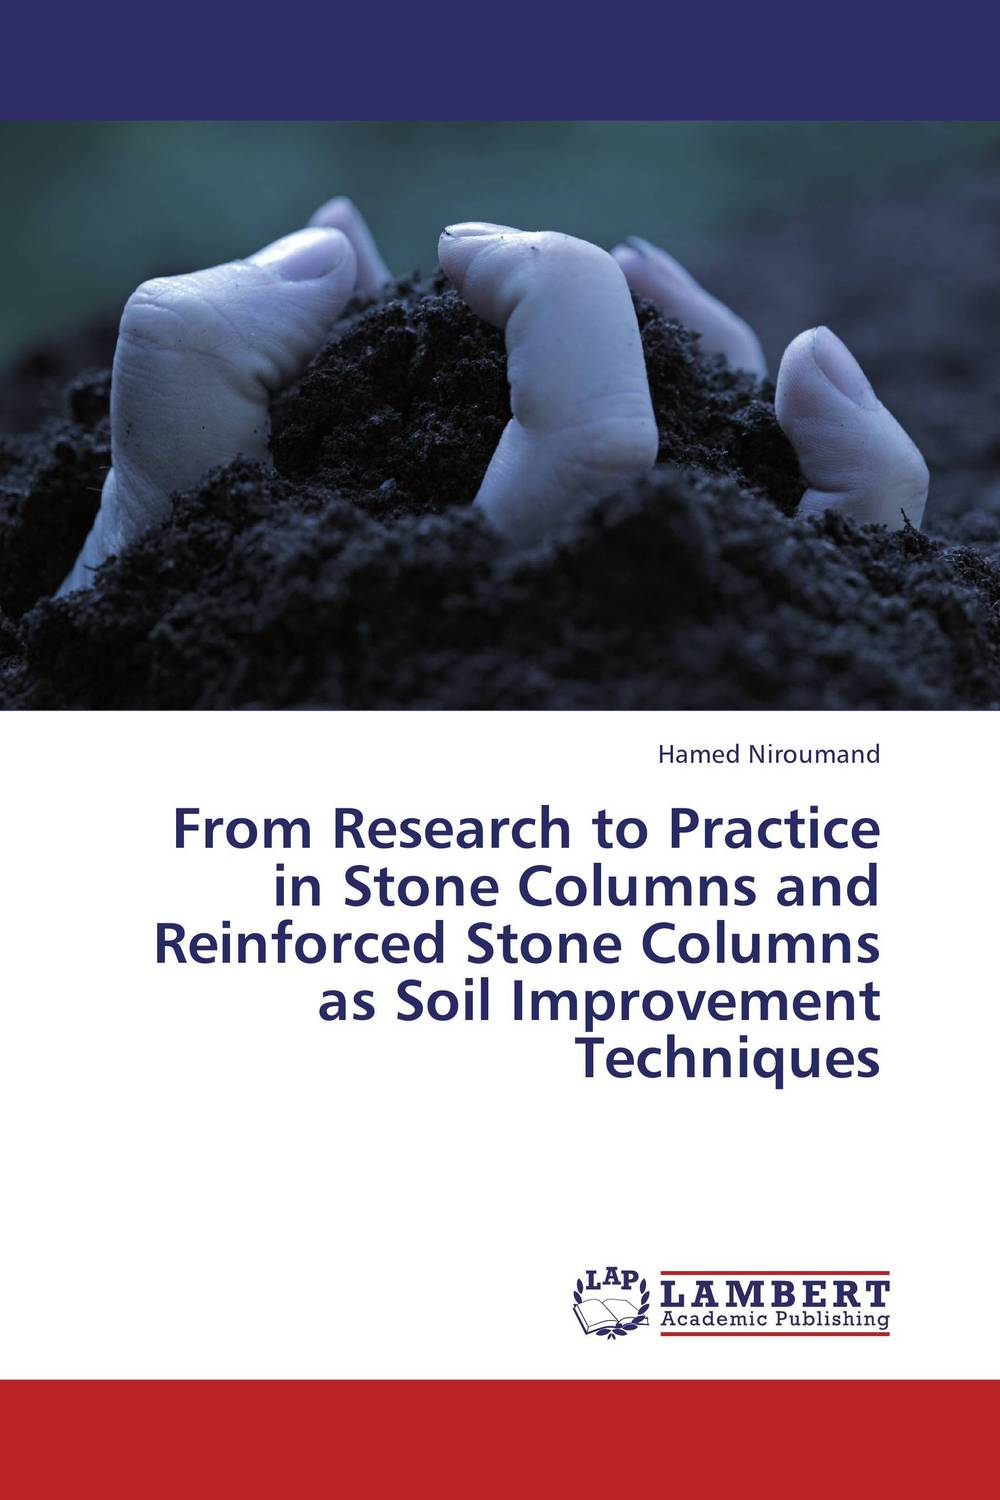 From Research to Practice in Stone Columns and Reinforced Stone Columns as Soil Improvement Techniques from research to practice in stone columns and reinforced stone columns as soil improvement techniques